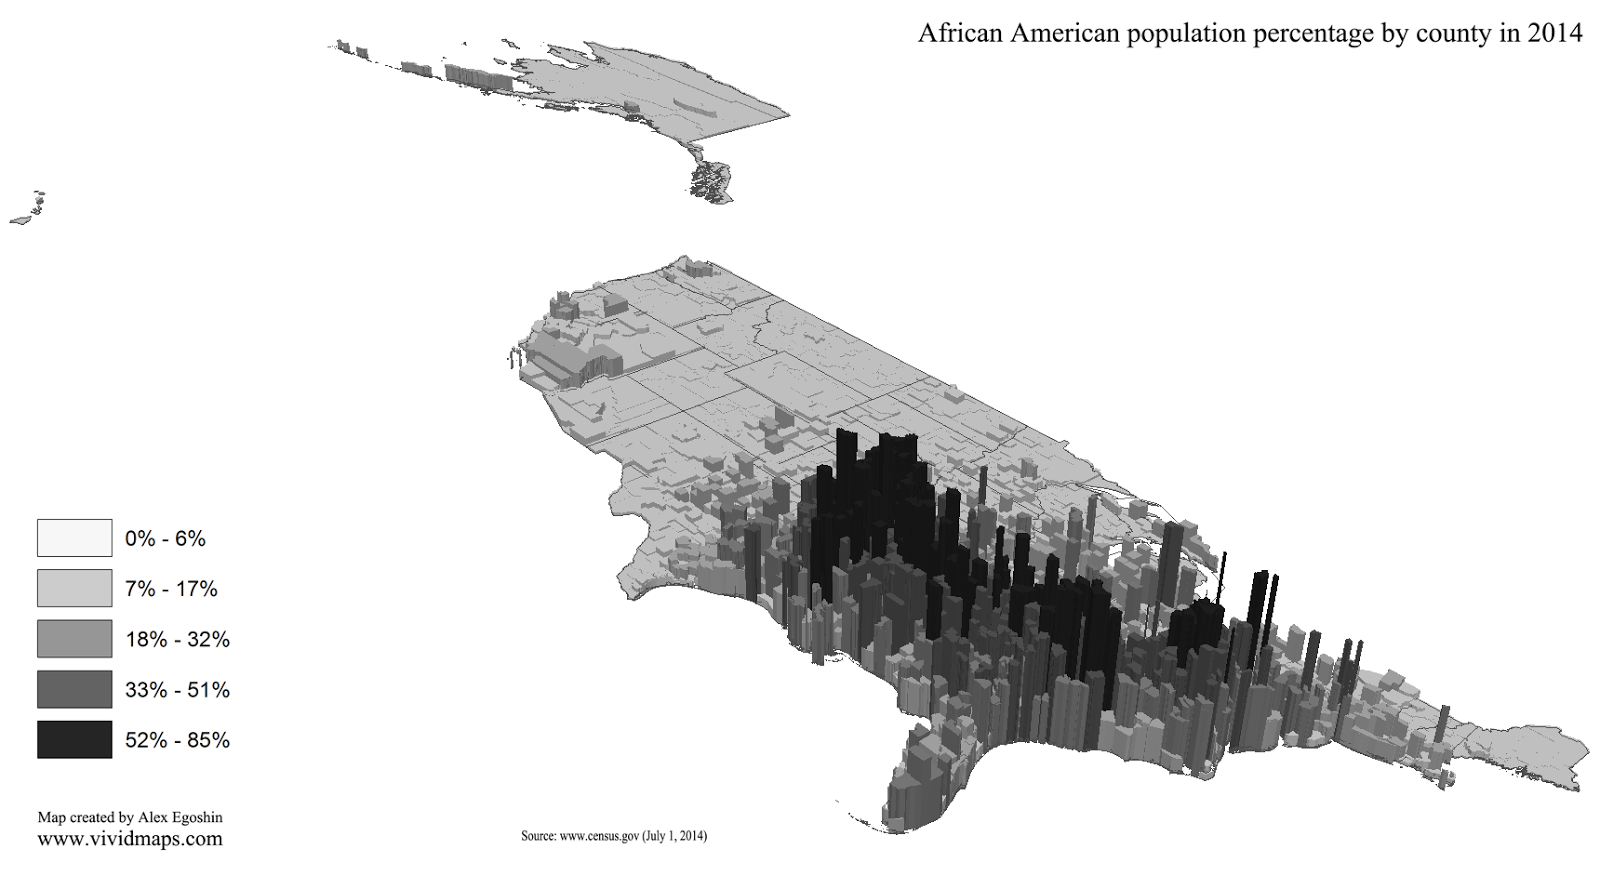 African American population percentage by county